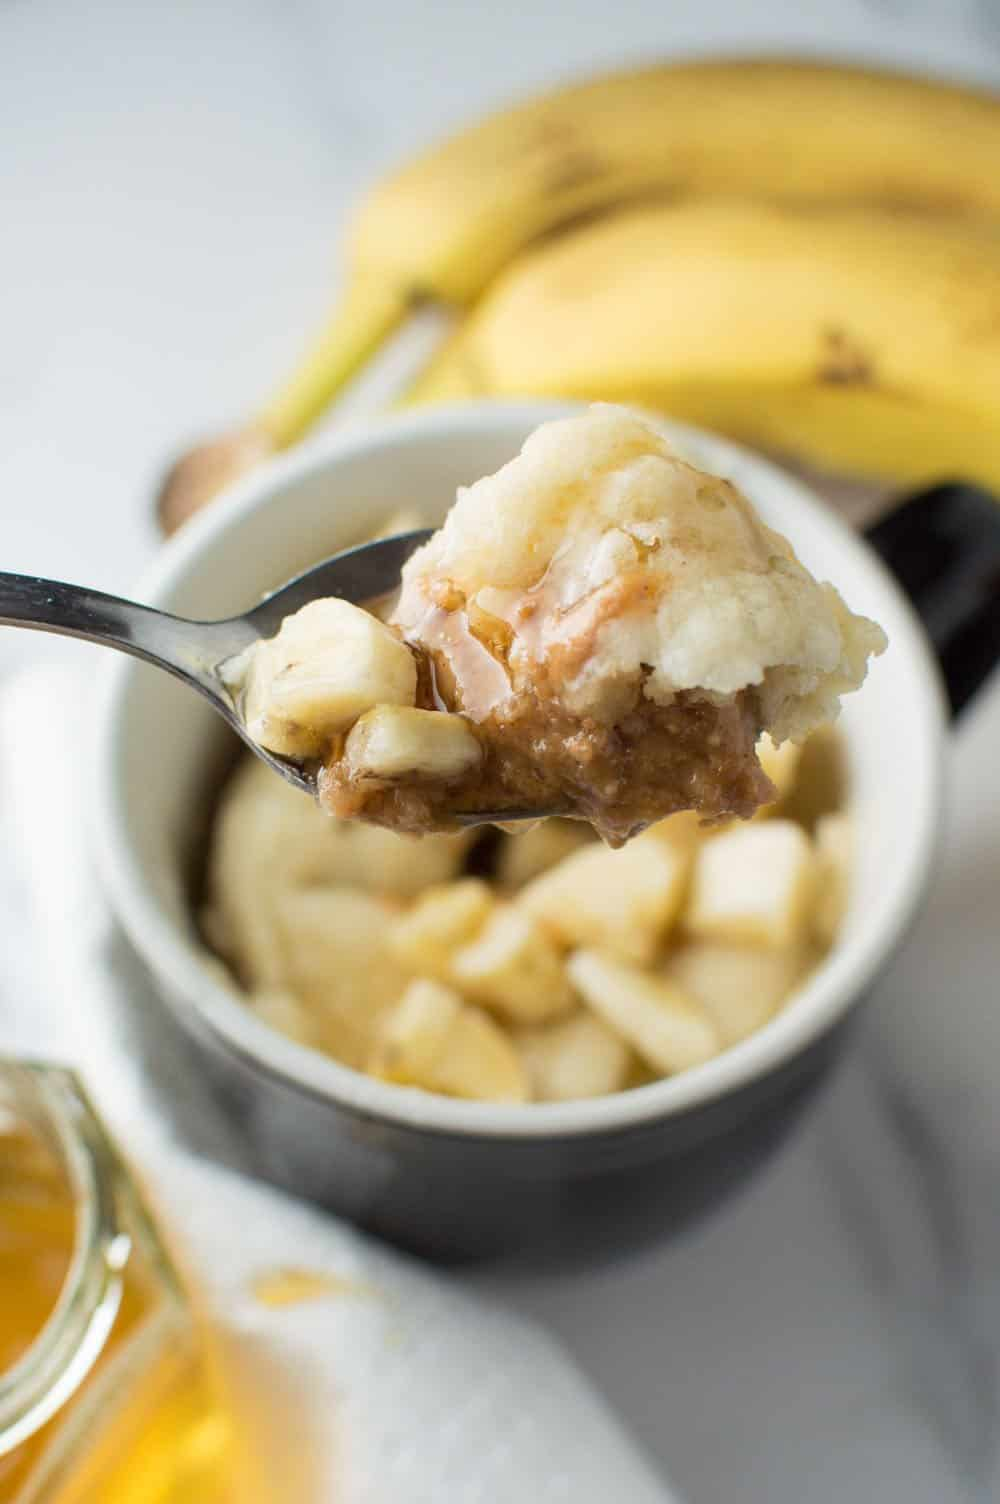 Honey Peanut Butter Banana Mug Cake